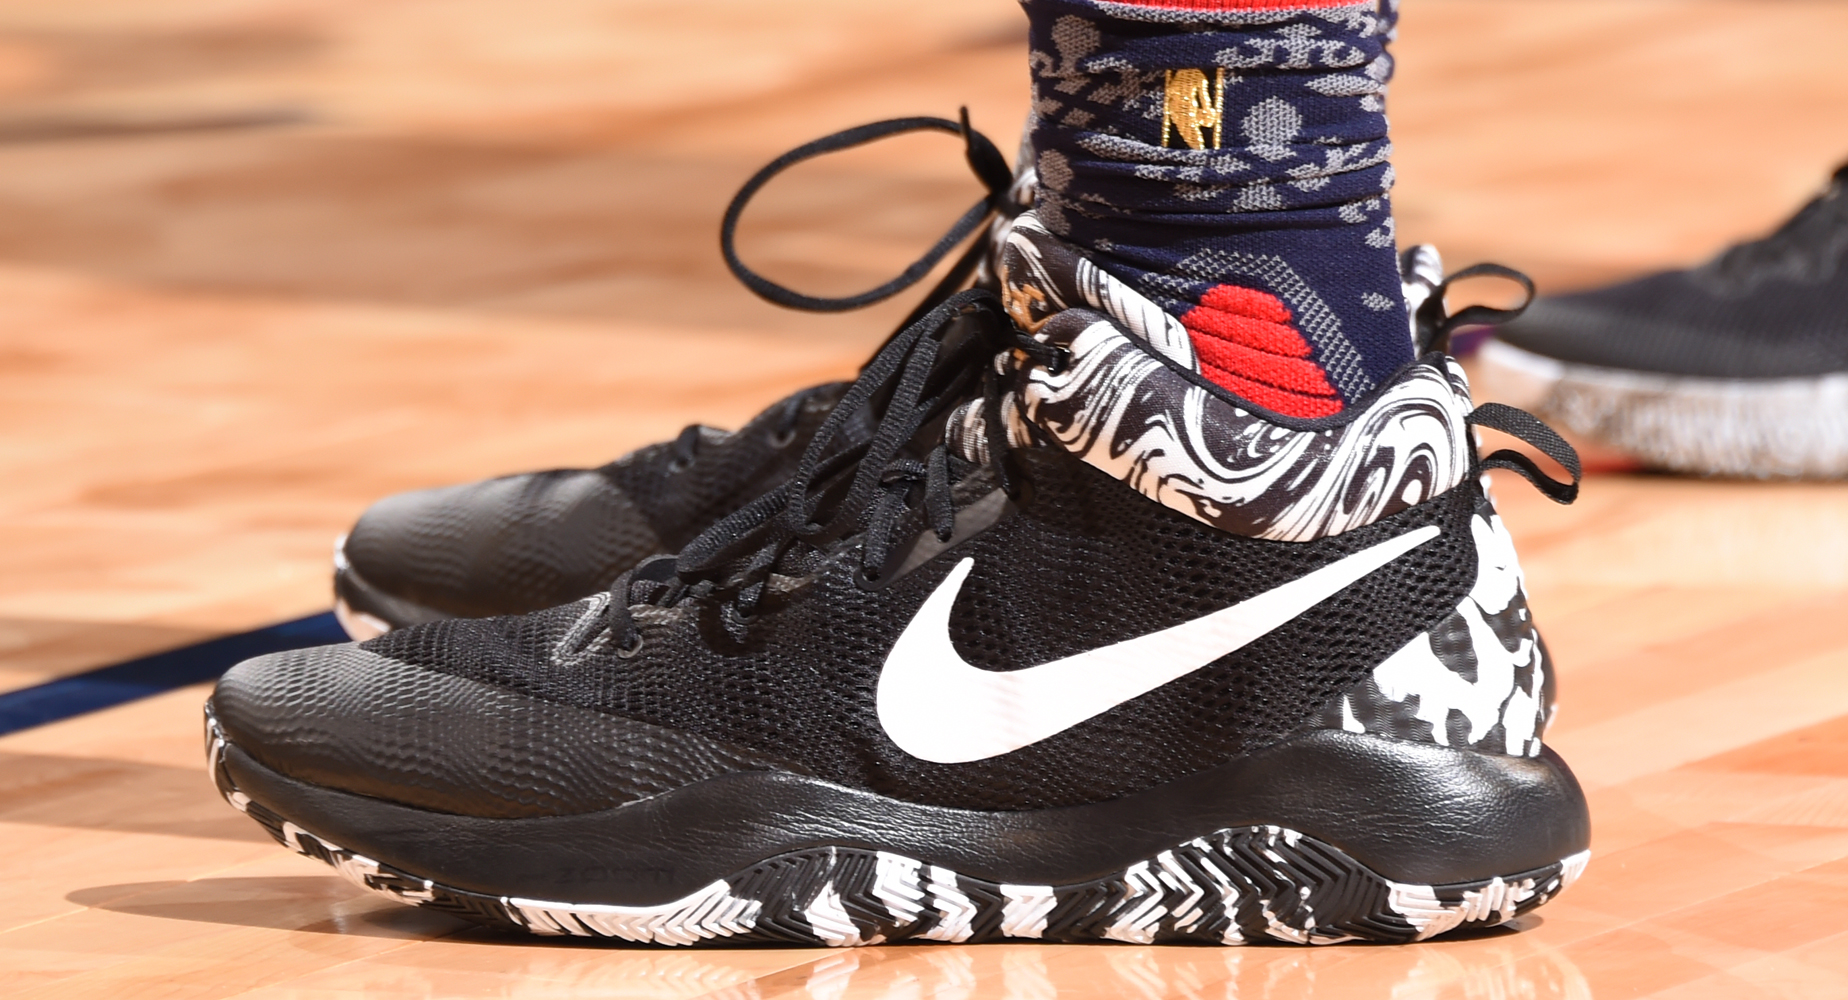 Worn by Devin Booker in the Rising Stars Challenge